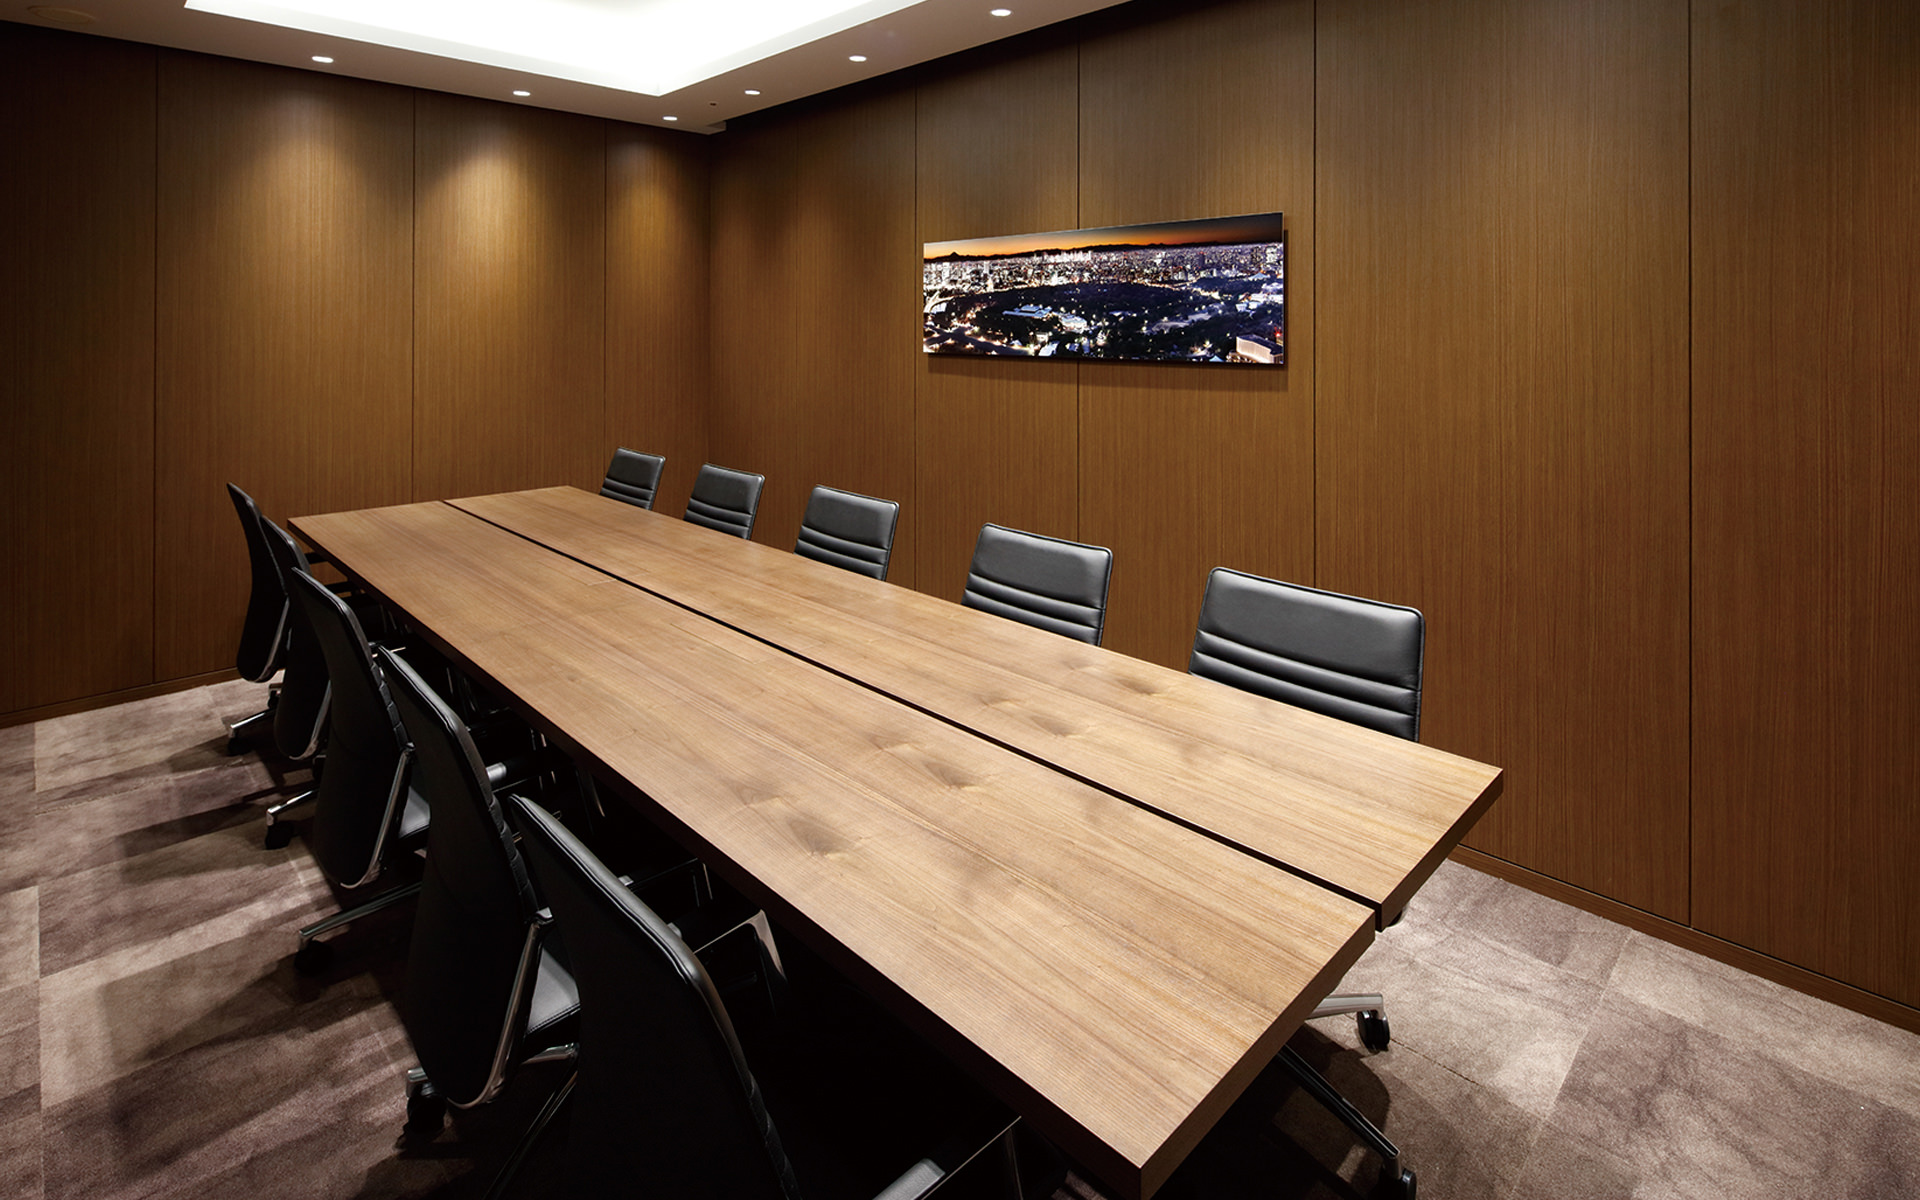 Shared meeting rooms (10 total) available only to Premier Floor tenants